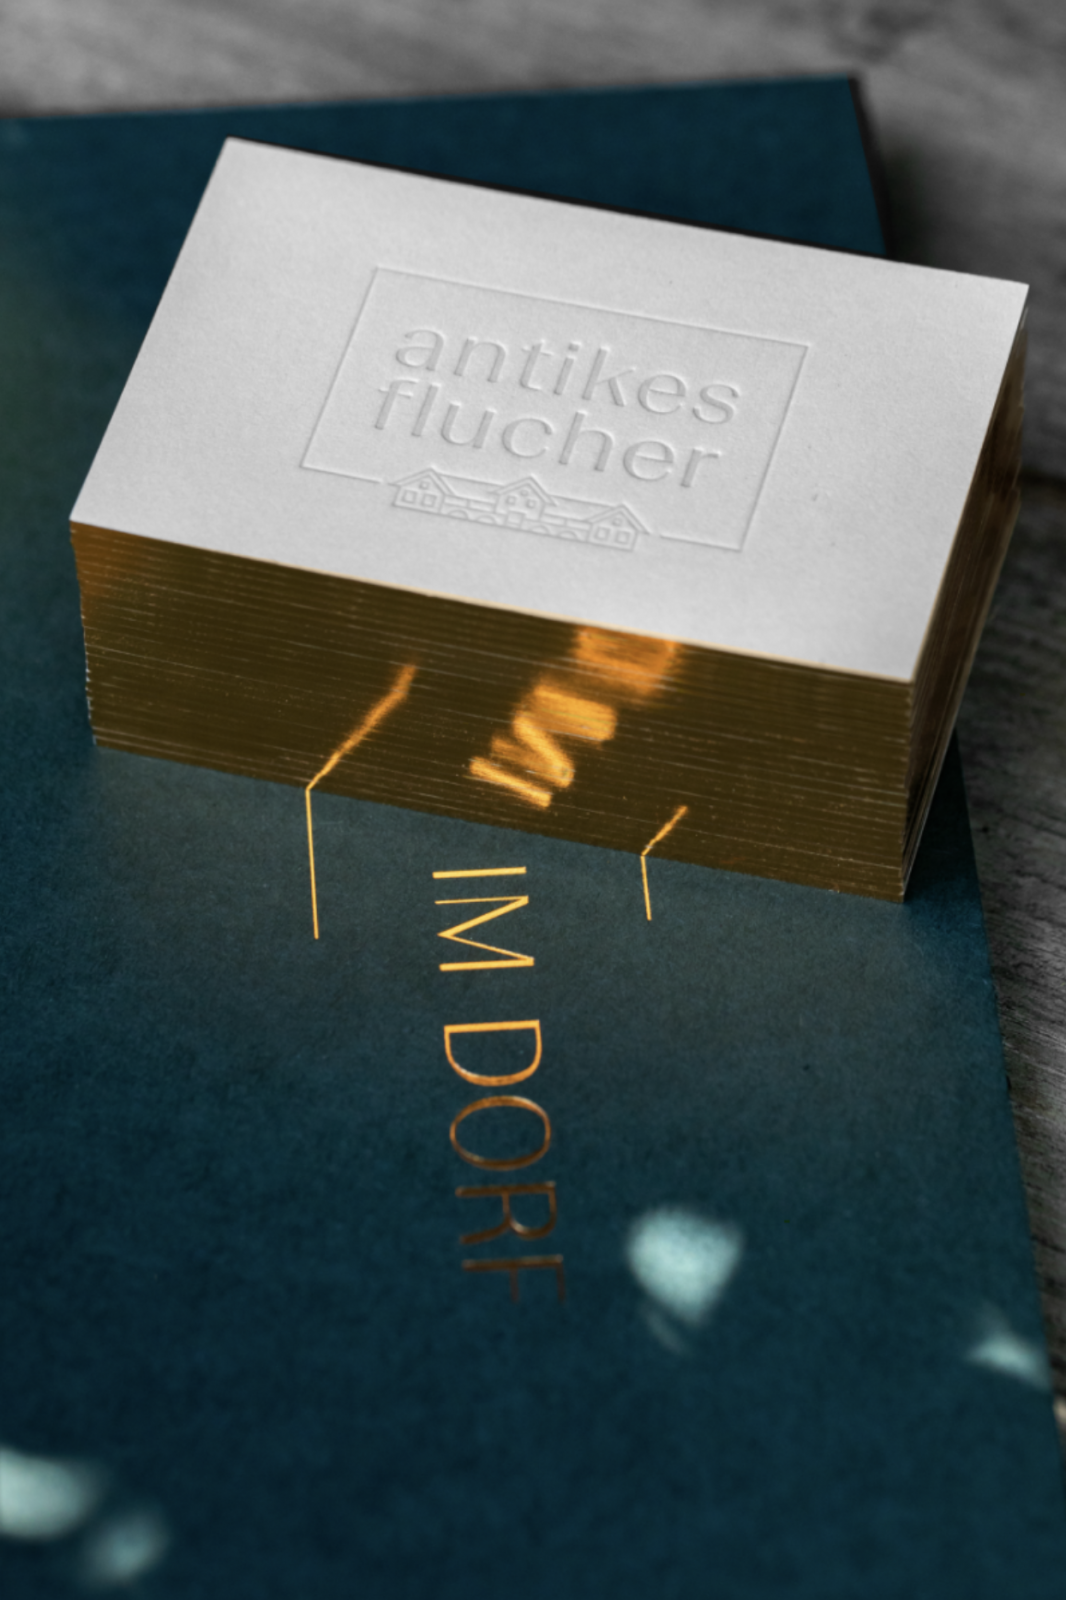 Antikes Flucher Branding by Simone Jauk Shines Like A Gemstone